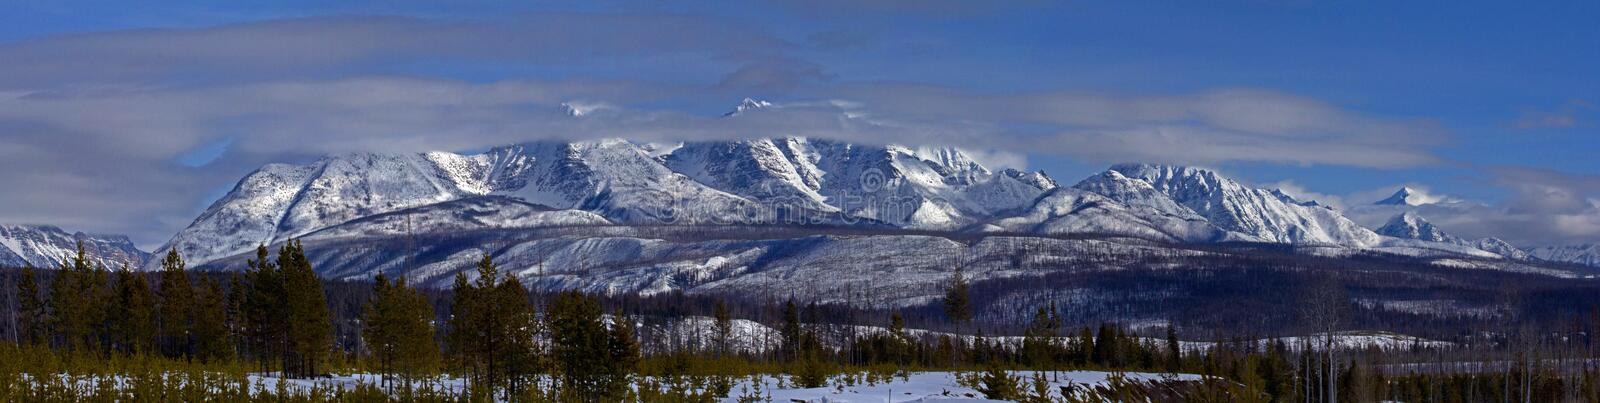 Download Livingston Range Of Mountains Stock Photo - Image: 29266140